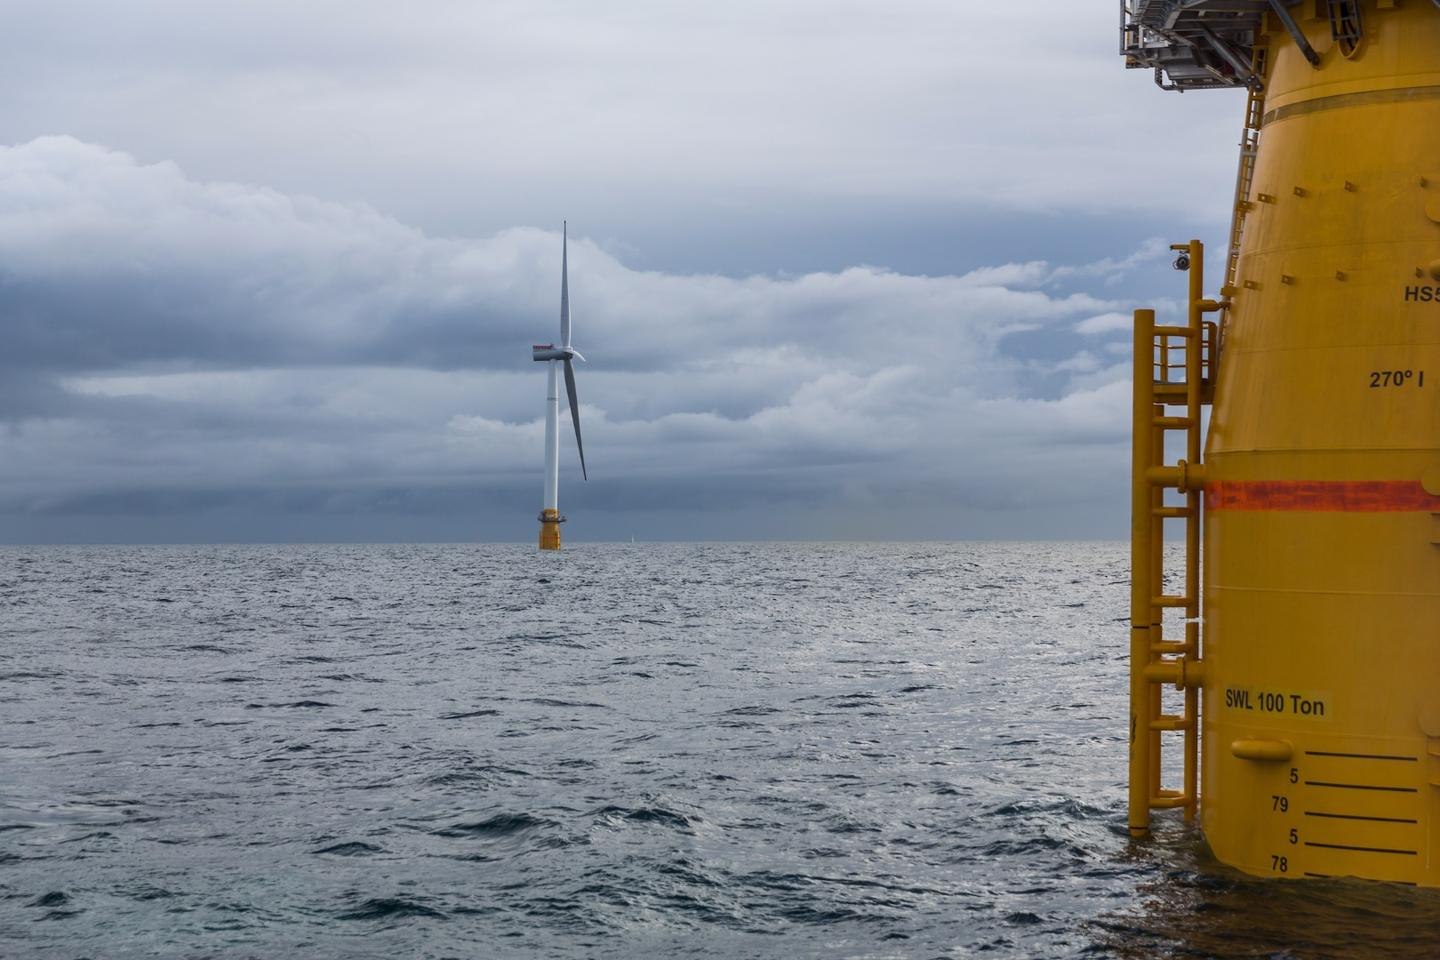 The floating turbines used in the Hywind farm can operate in water  up to 10 times deeper than turbines fixed to the seafloor, opening up far more opportunities for offshore wind farms